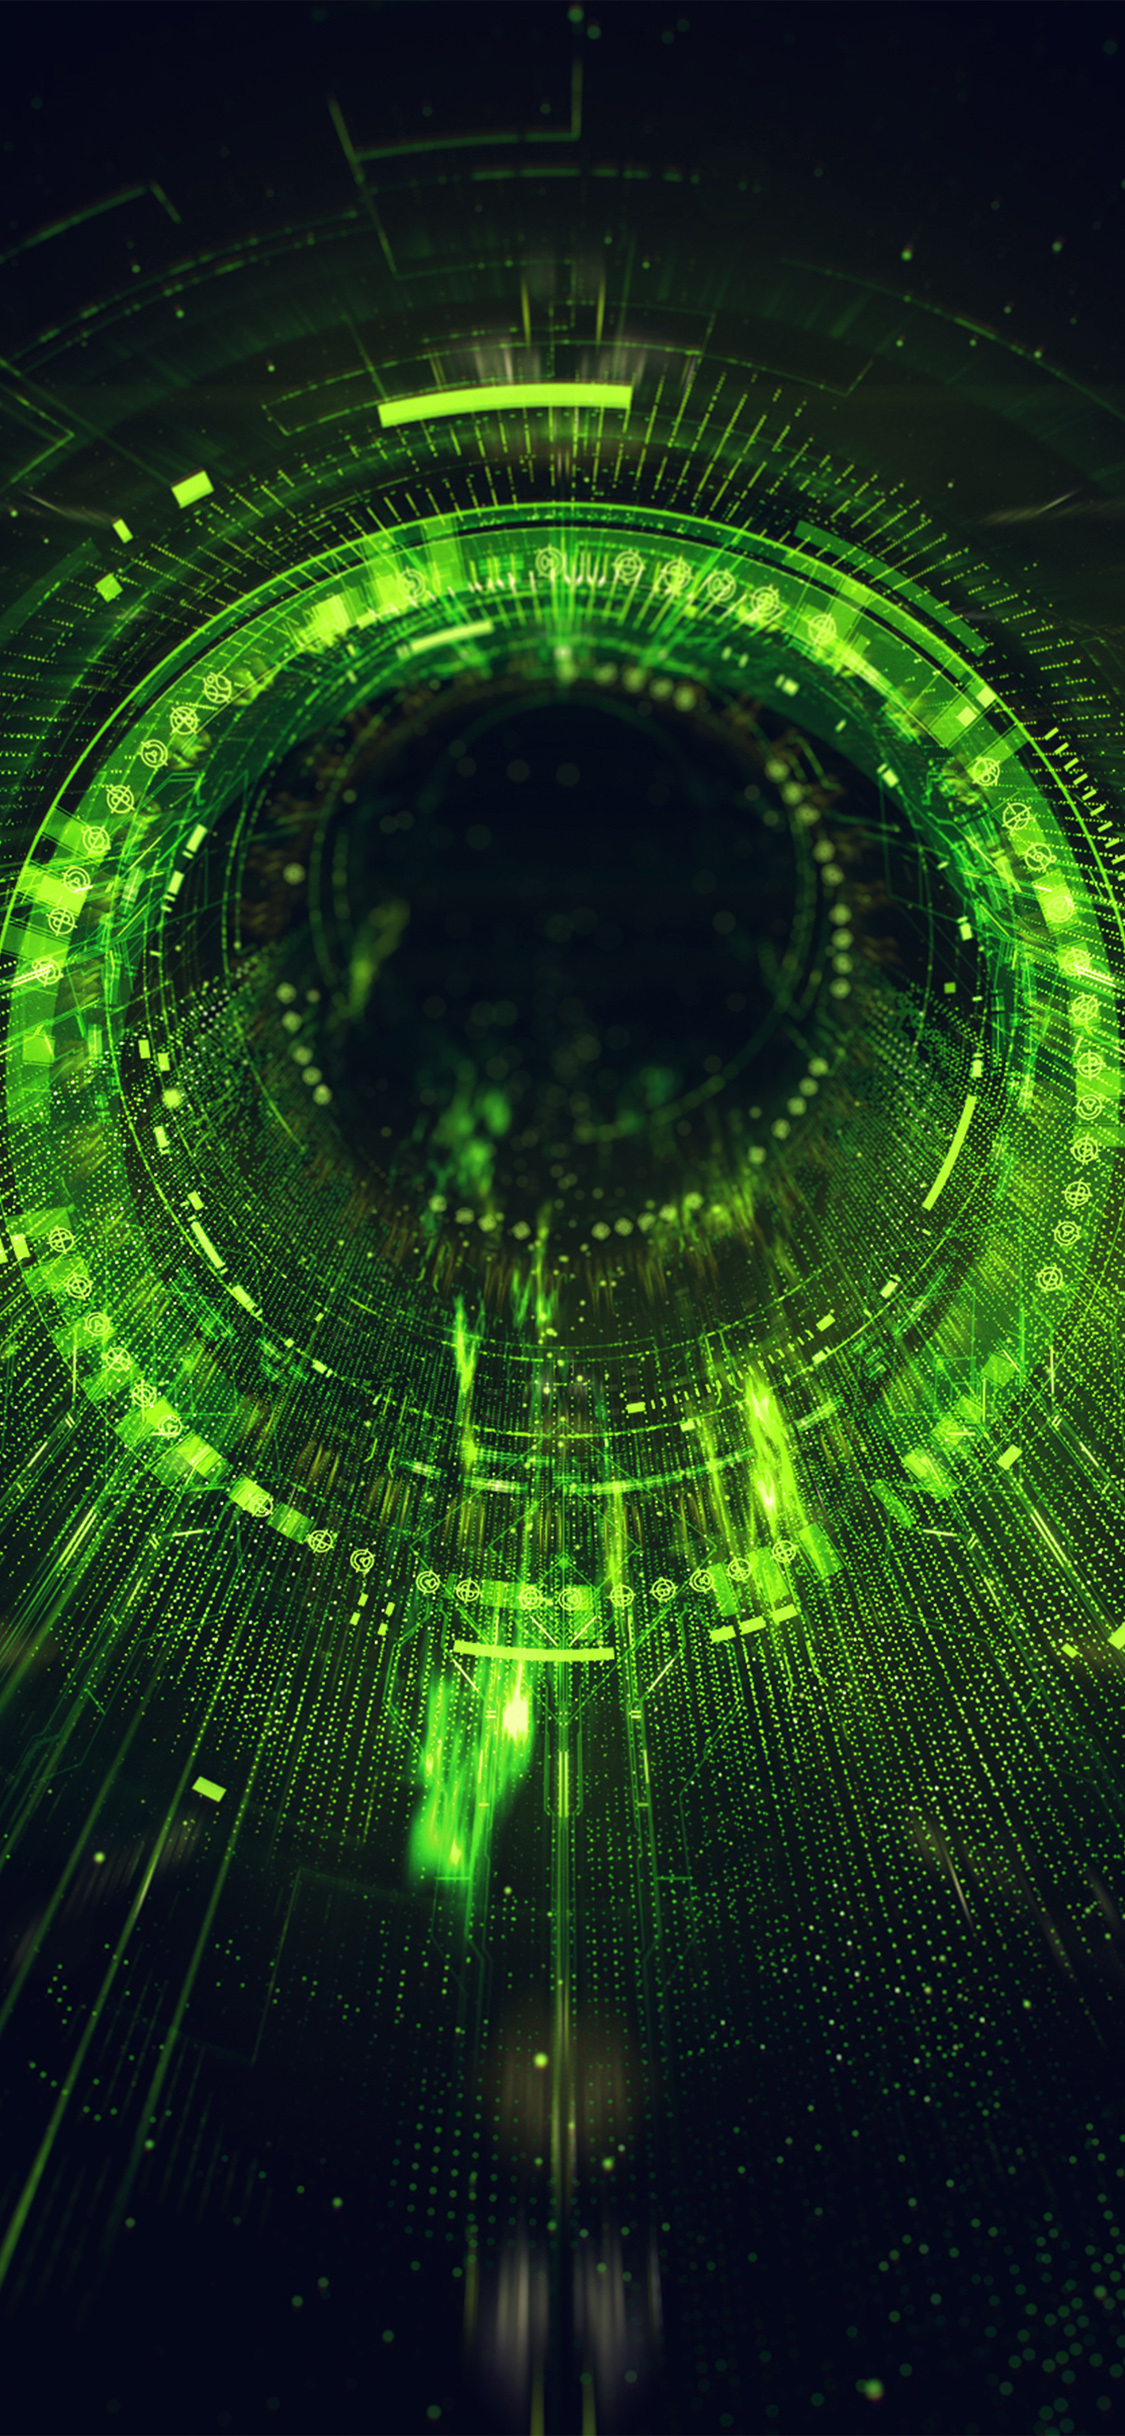 iPhonexpapers.com-Apple-iPhone-wallpaper-ba03-circle-blackhole-green-digital-illustration-art